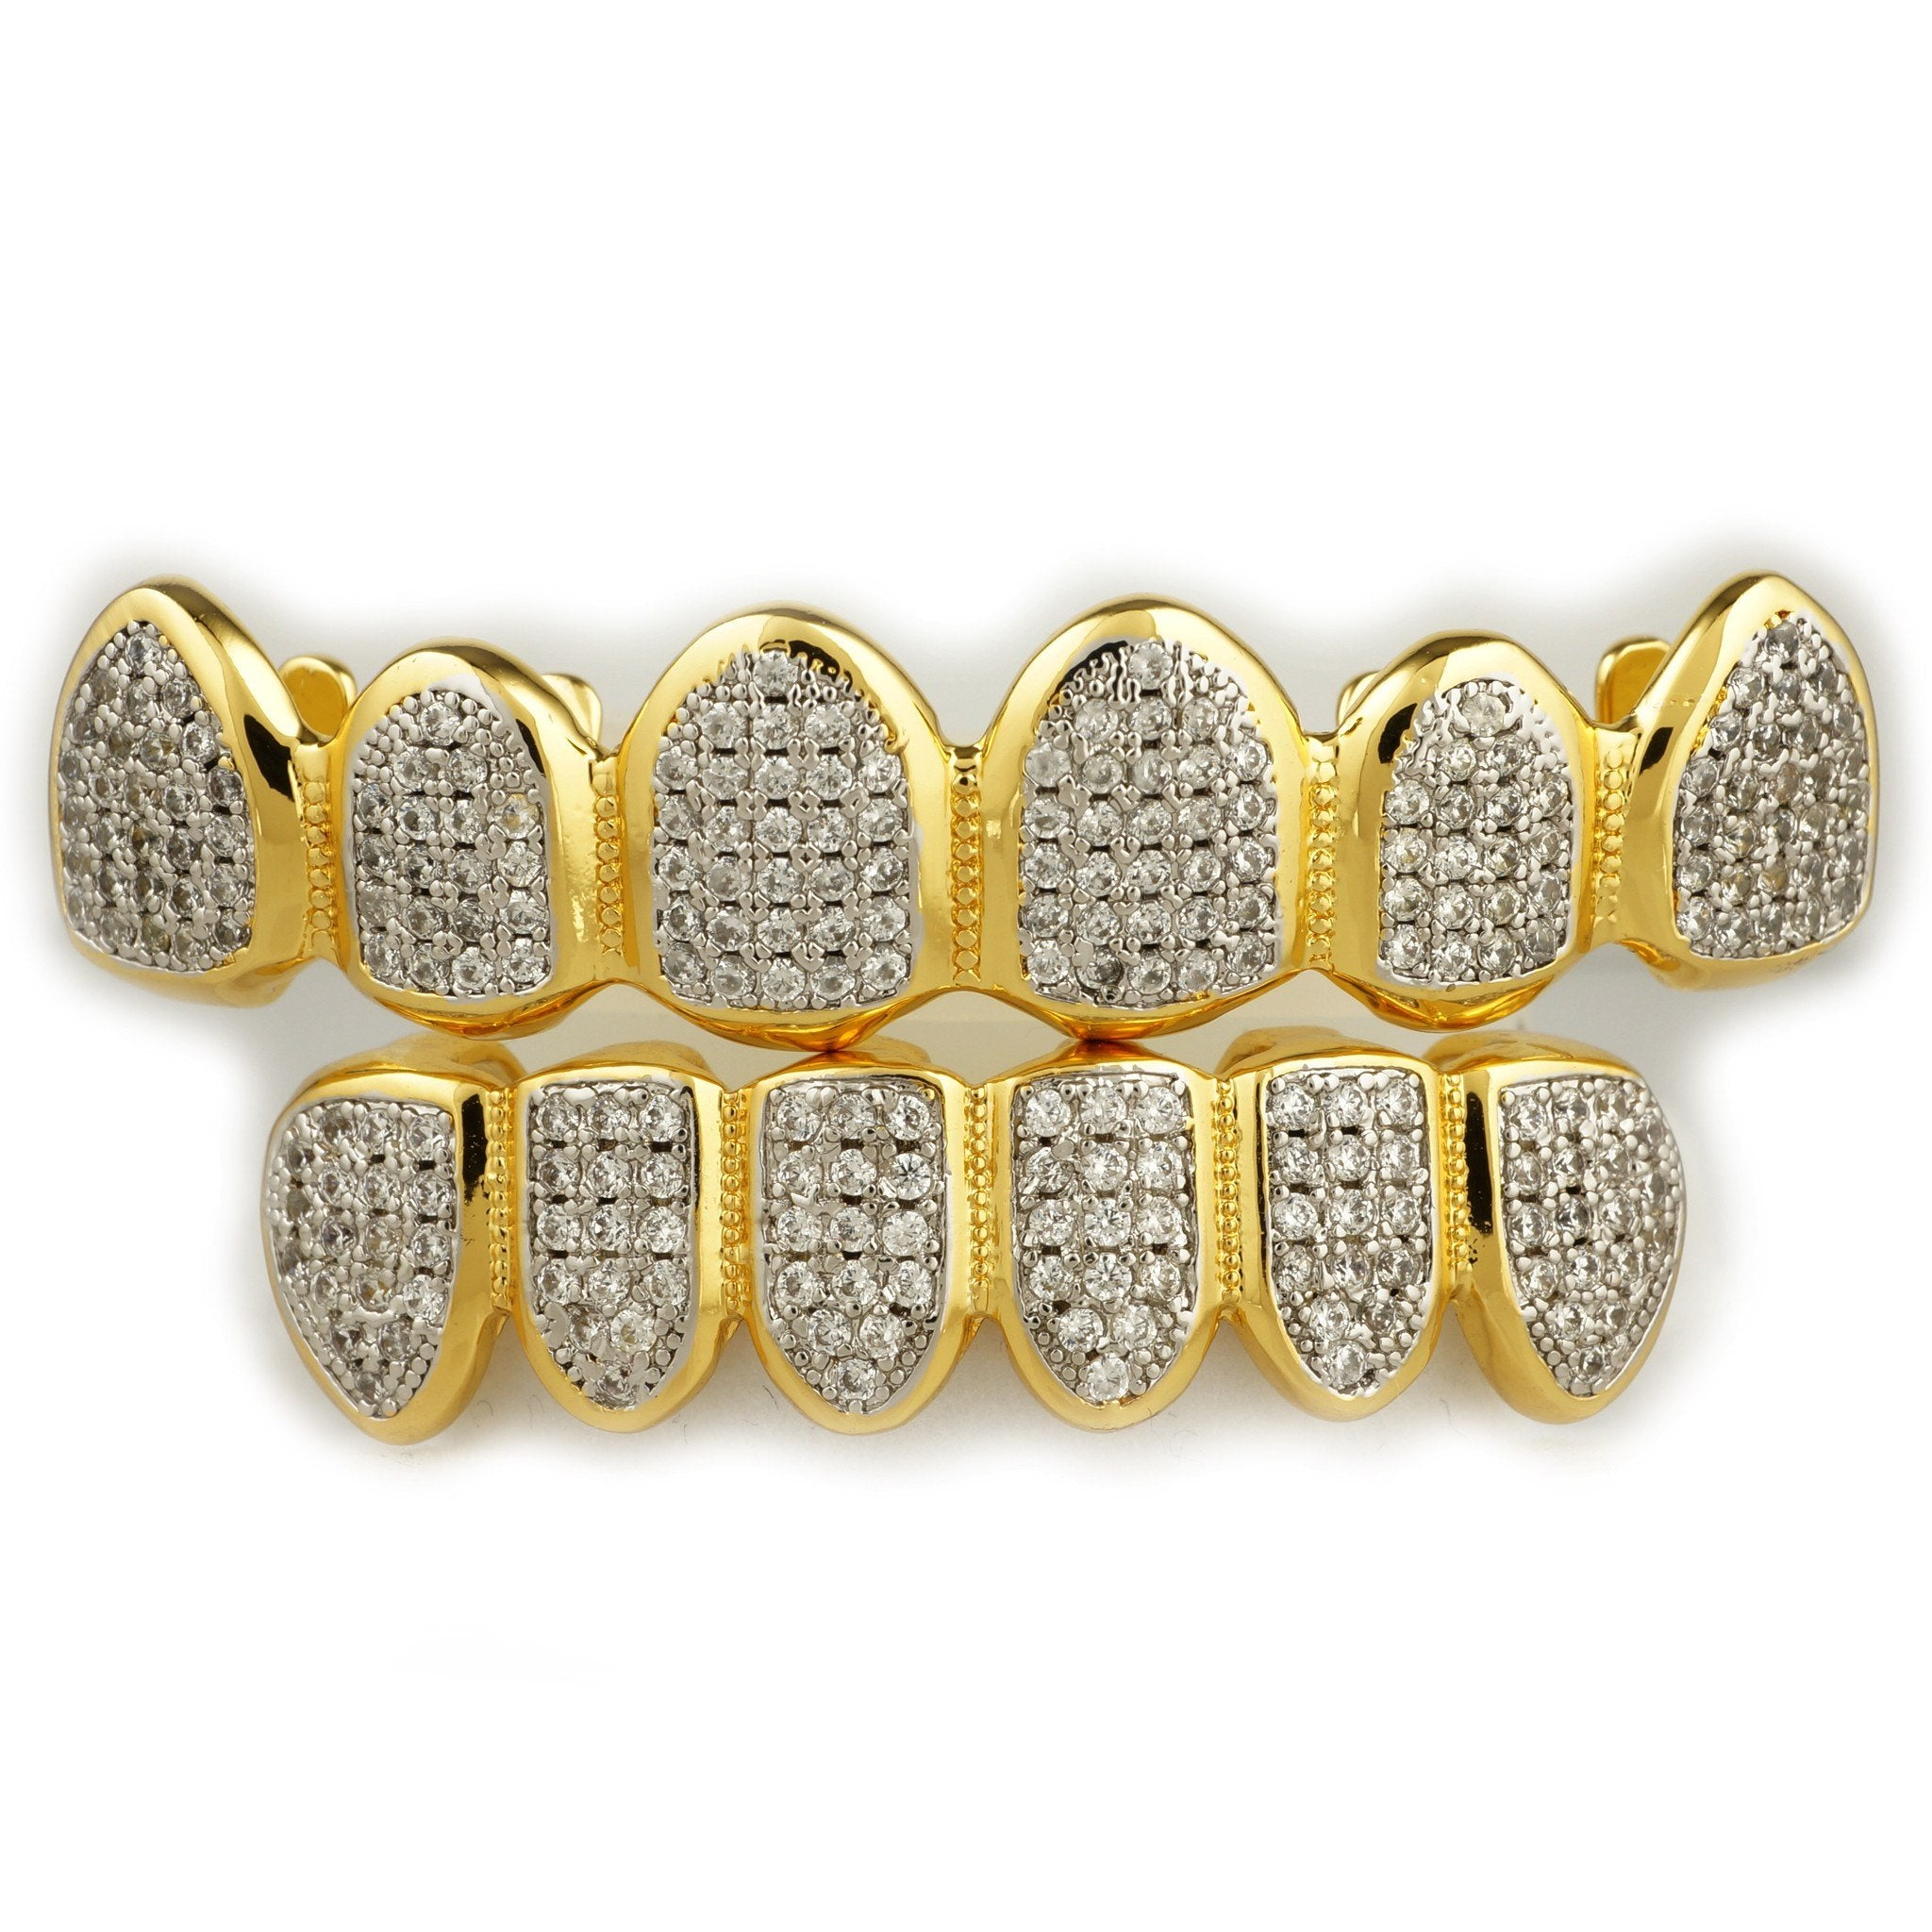 18k gold micro pave rhodium prong grillz niv 39 s bling for Cheap gold jewelry near me